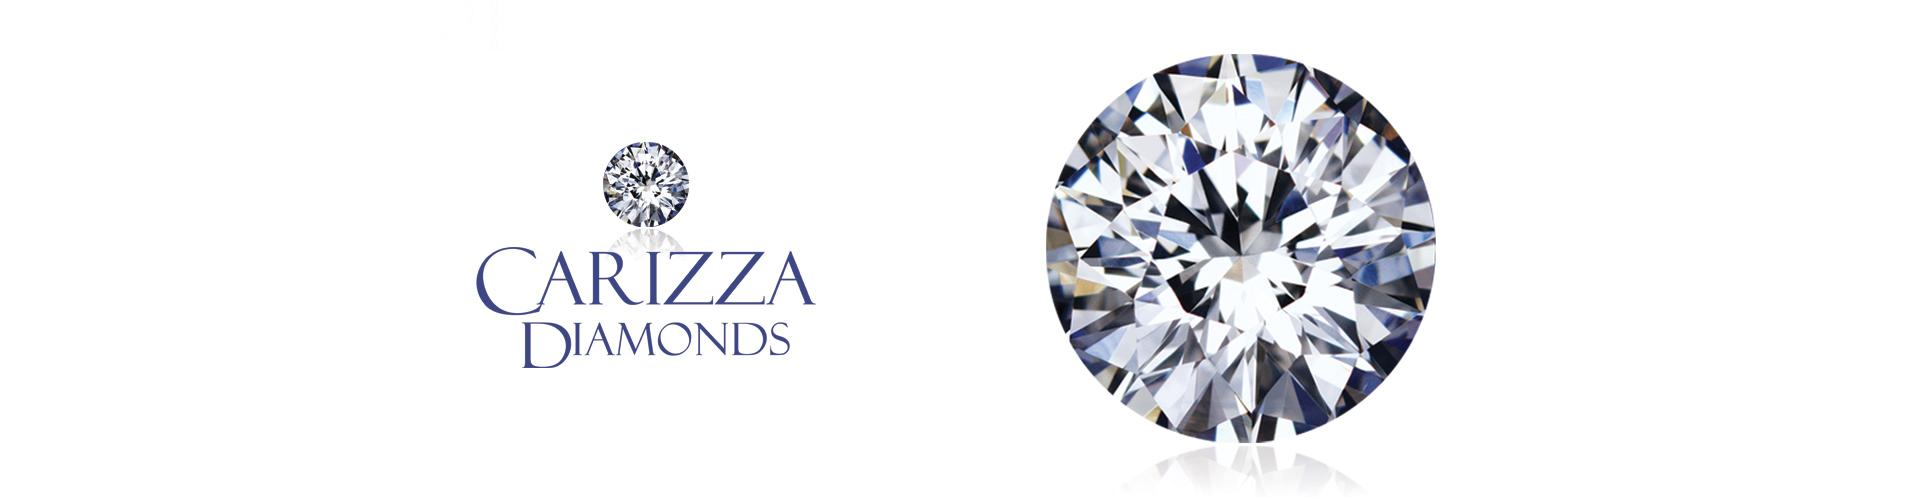 The Carizza Diamond